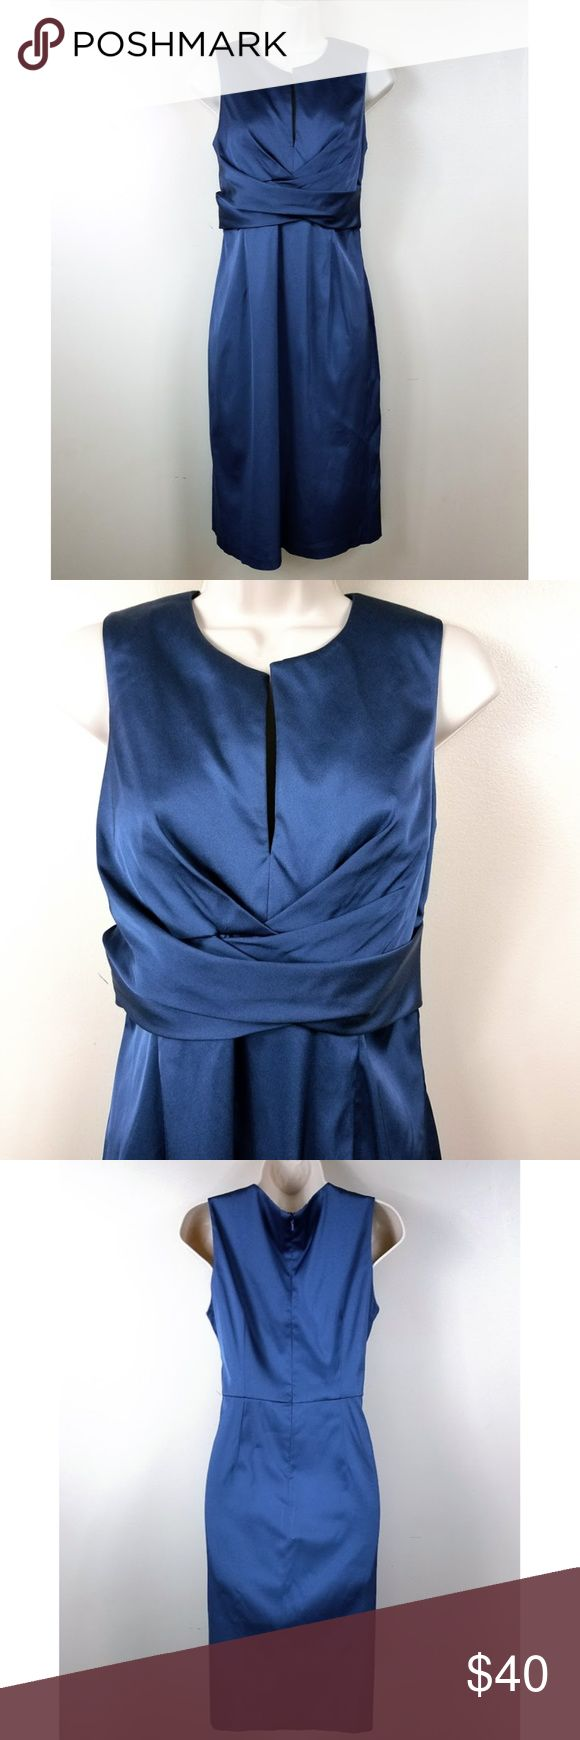 """Donna Ricco NY Sleeveless Satin Dress Donna Rico New York Size 8 Satin Dress in Blue Beautiful formal wear.  Closure: Invisible zipper at back w hook and eye clasp With spandex for comfort and stretch Fully lined (lining is attached)  Flat measurements (approx.): Shoulder to shoulder: 13 1/2"""" Bust (armpit to armpit): 16"""" Waist: 14 1/2"""" Hips (24"""" from shoulder):  19"""" Width at hem: 19 3/4"""" Length: 38 3/4""""  Good used condition. No tears, stains. From a pet-free, smoke-free home. Donna Ricco…"""